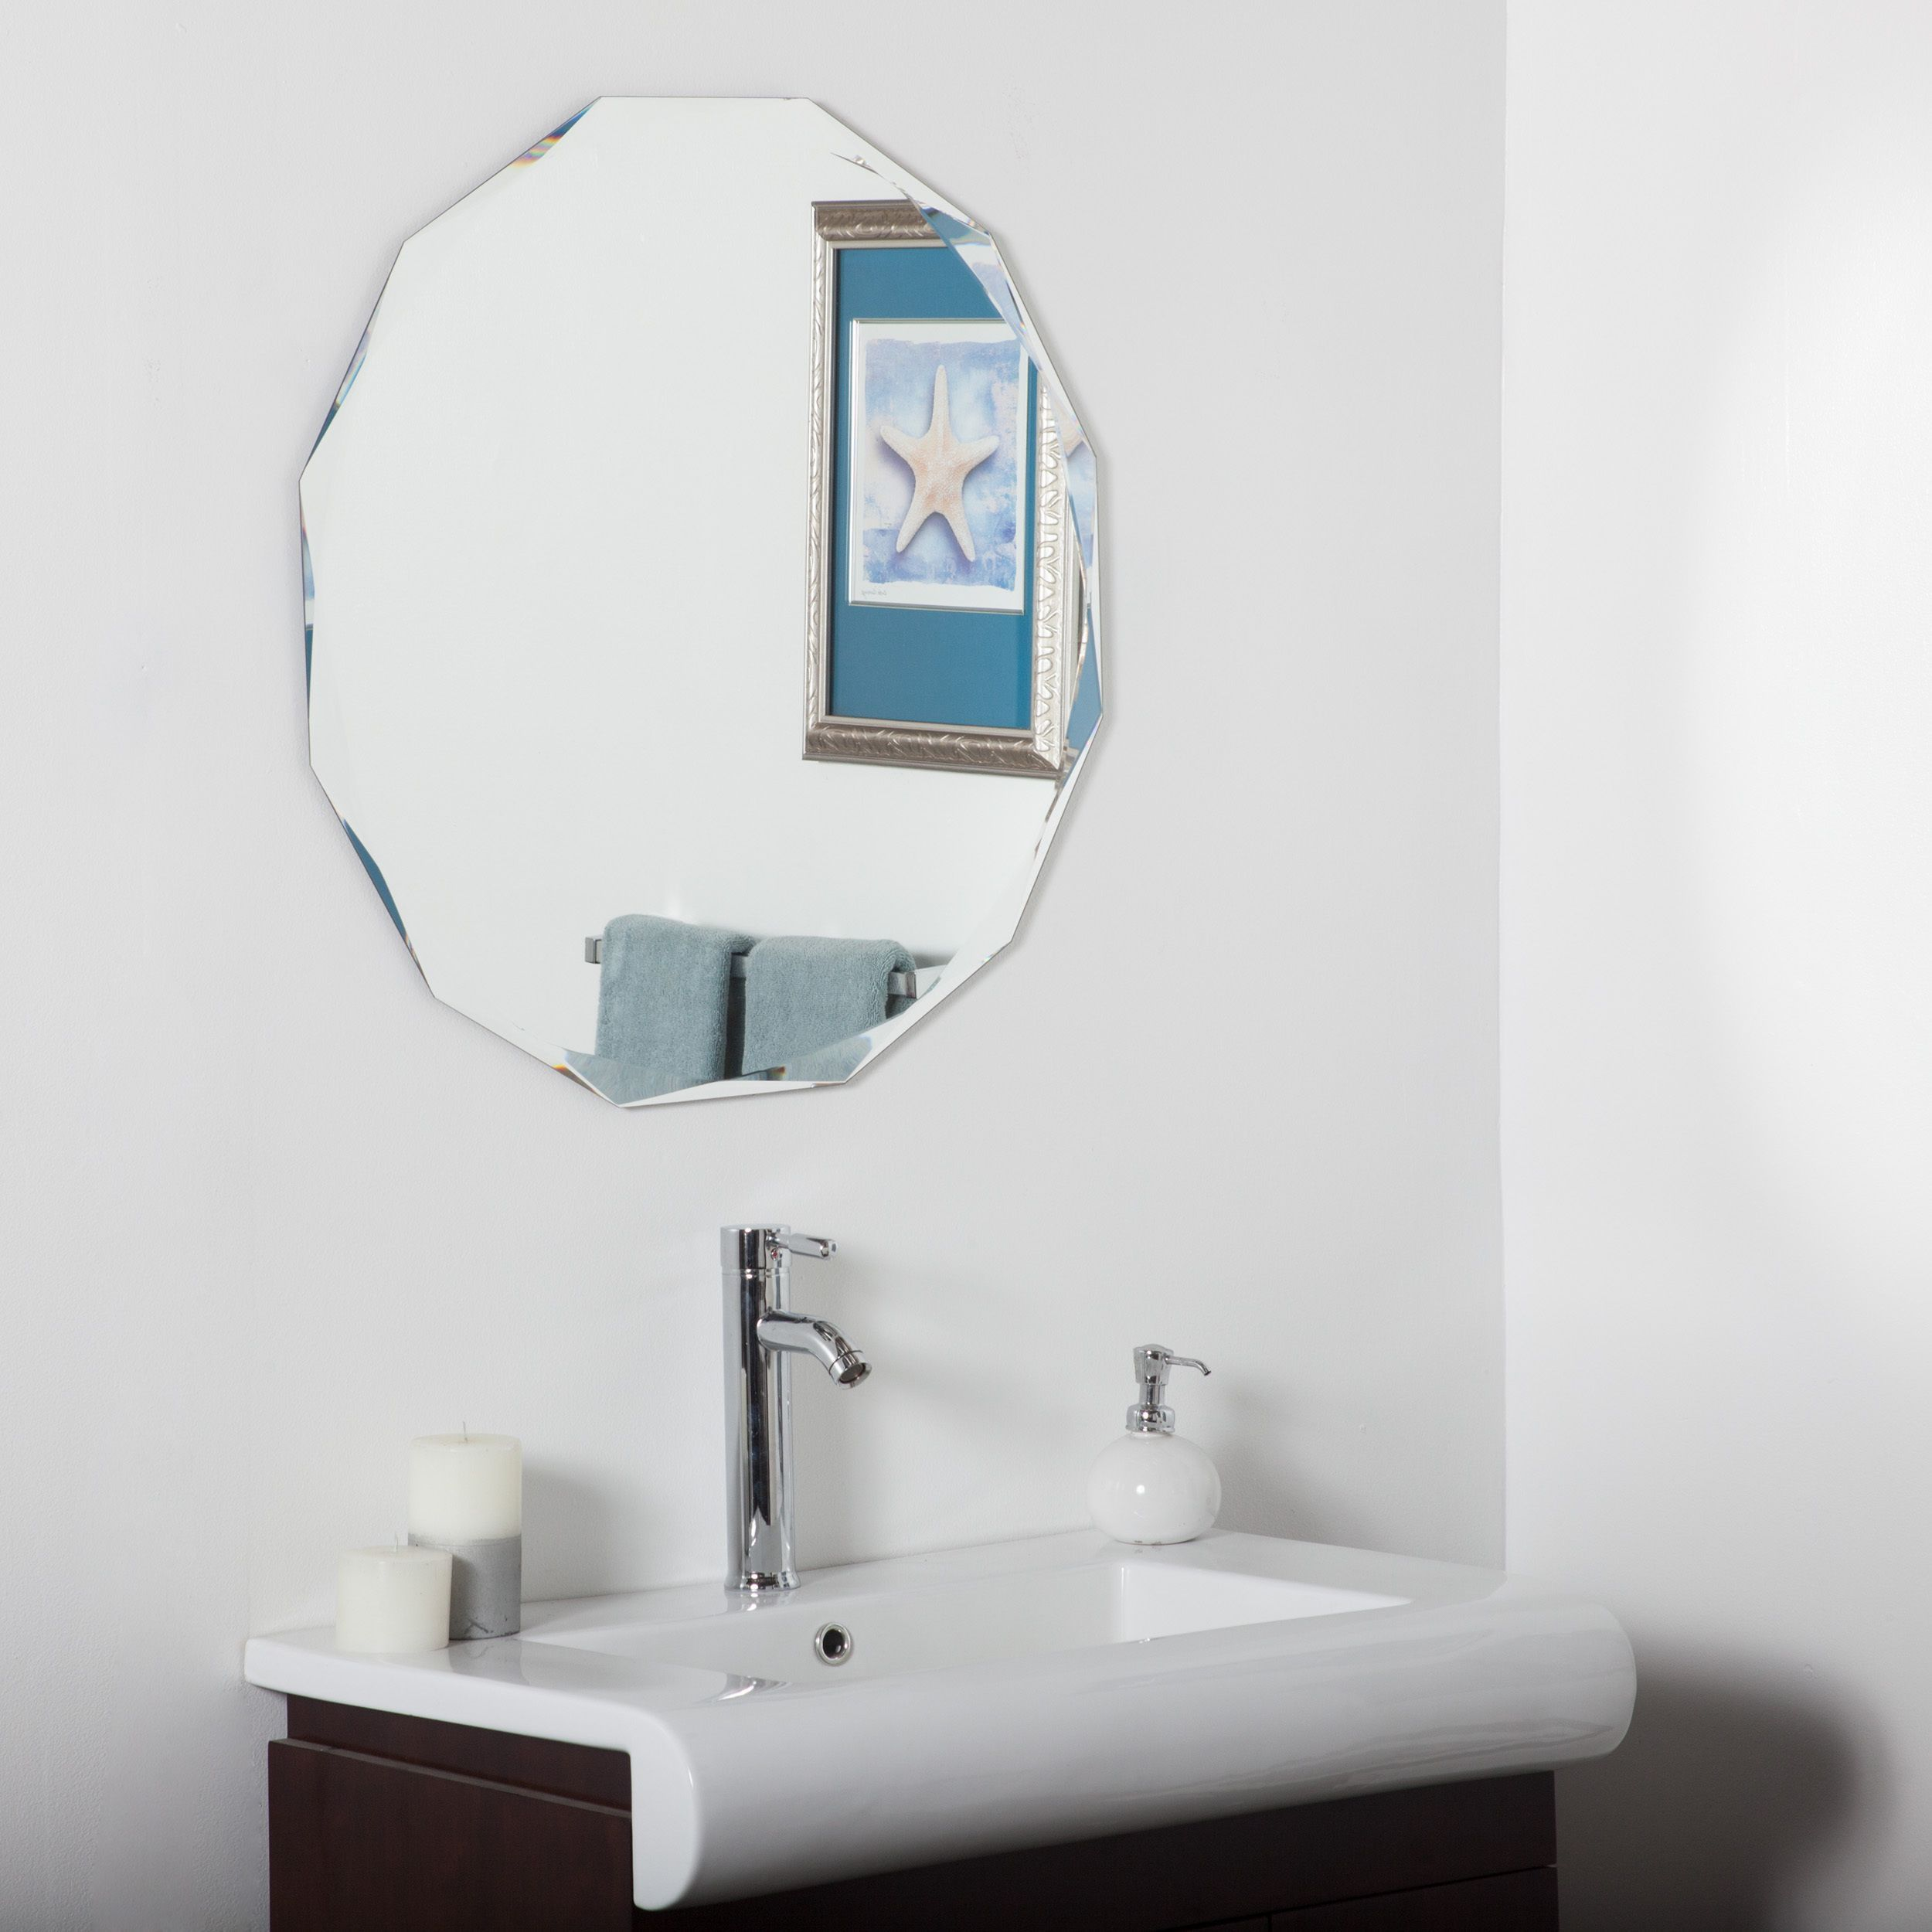 This Round Frameless Wall Mirror Has Unique Double Angle Bevels